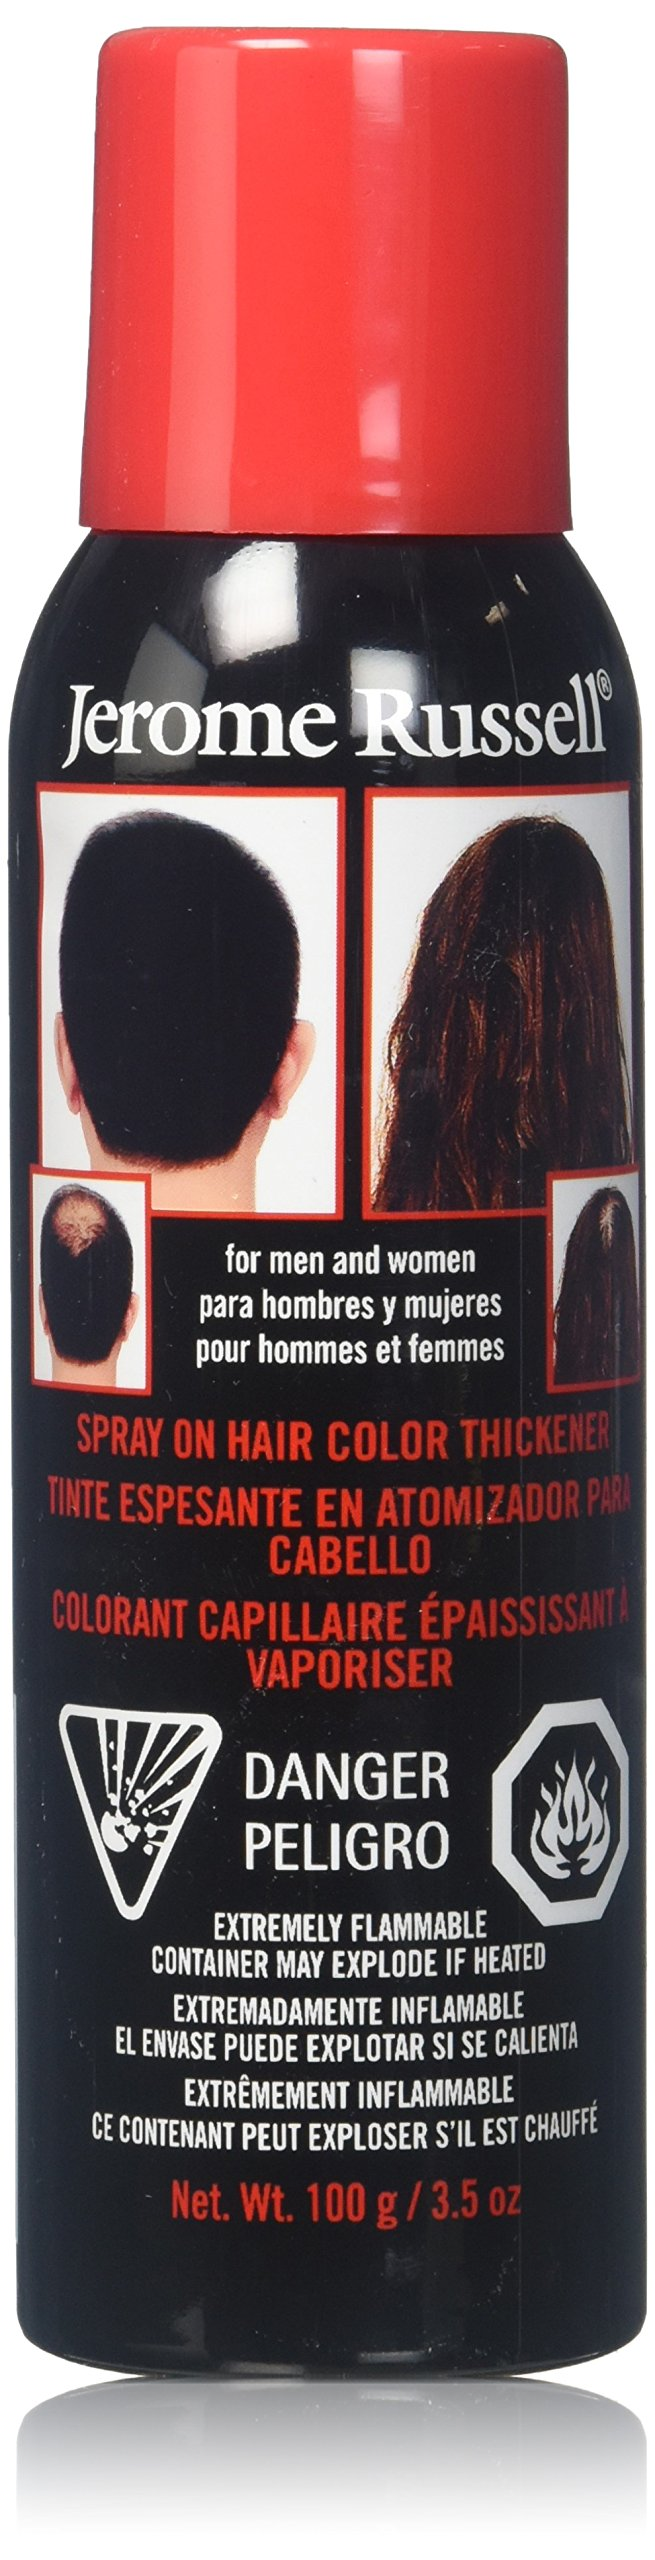 Details about jerome russell Hair Color Thickener for Thinning Hair,  Brown/Blonde, 3.5 Ounce